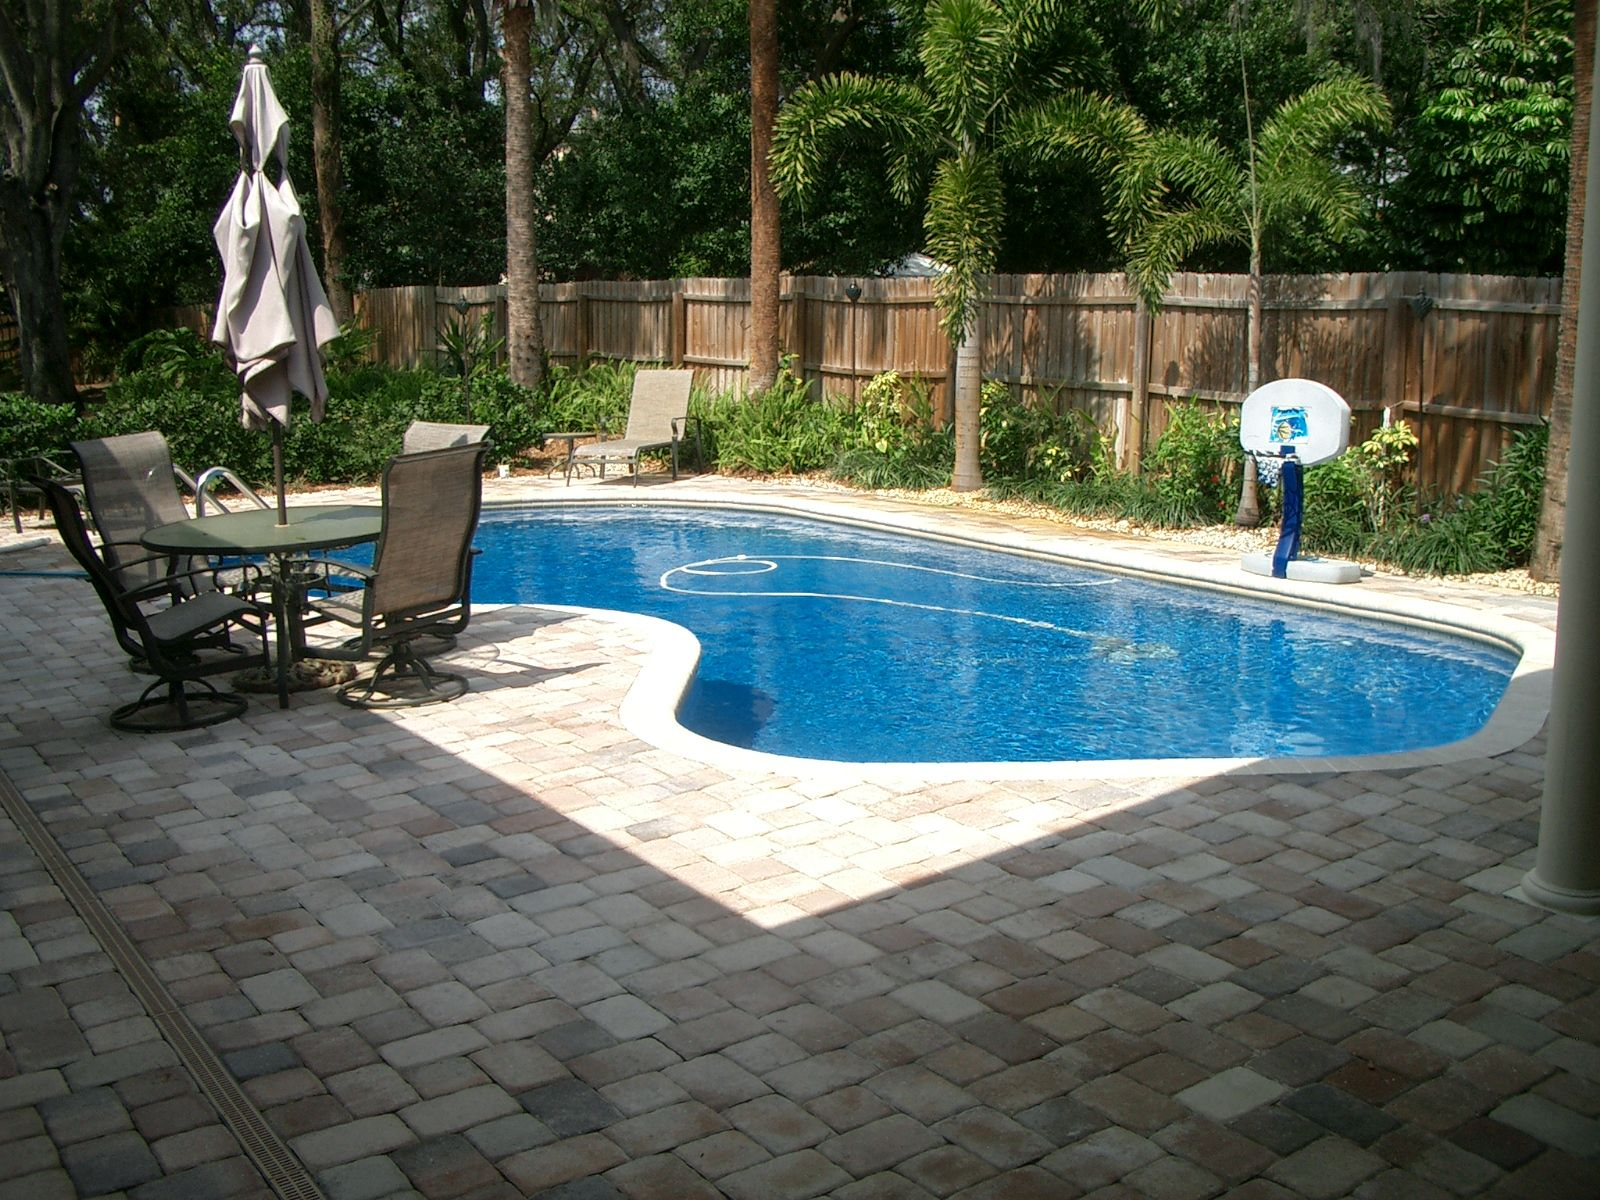 backyard pool design ideas backyard and pool designs backyard and pool designs pool ideas backyardpool in backyardsmall backyard pool design ideas